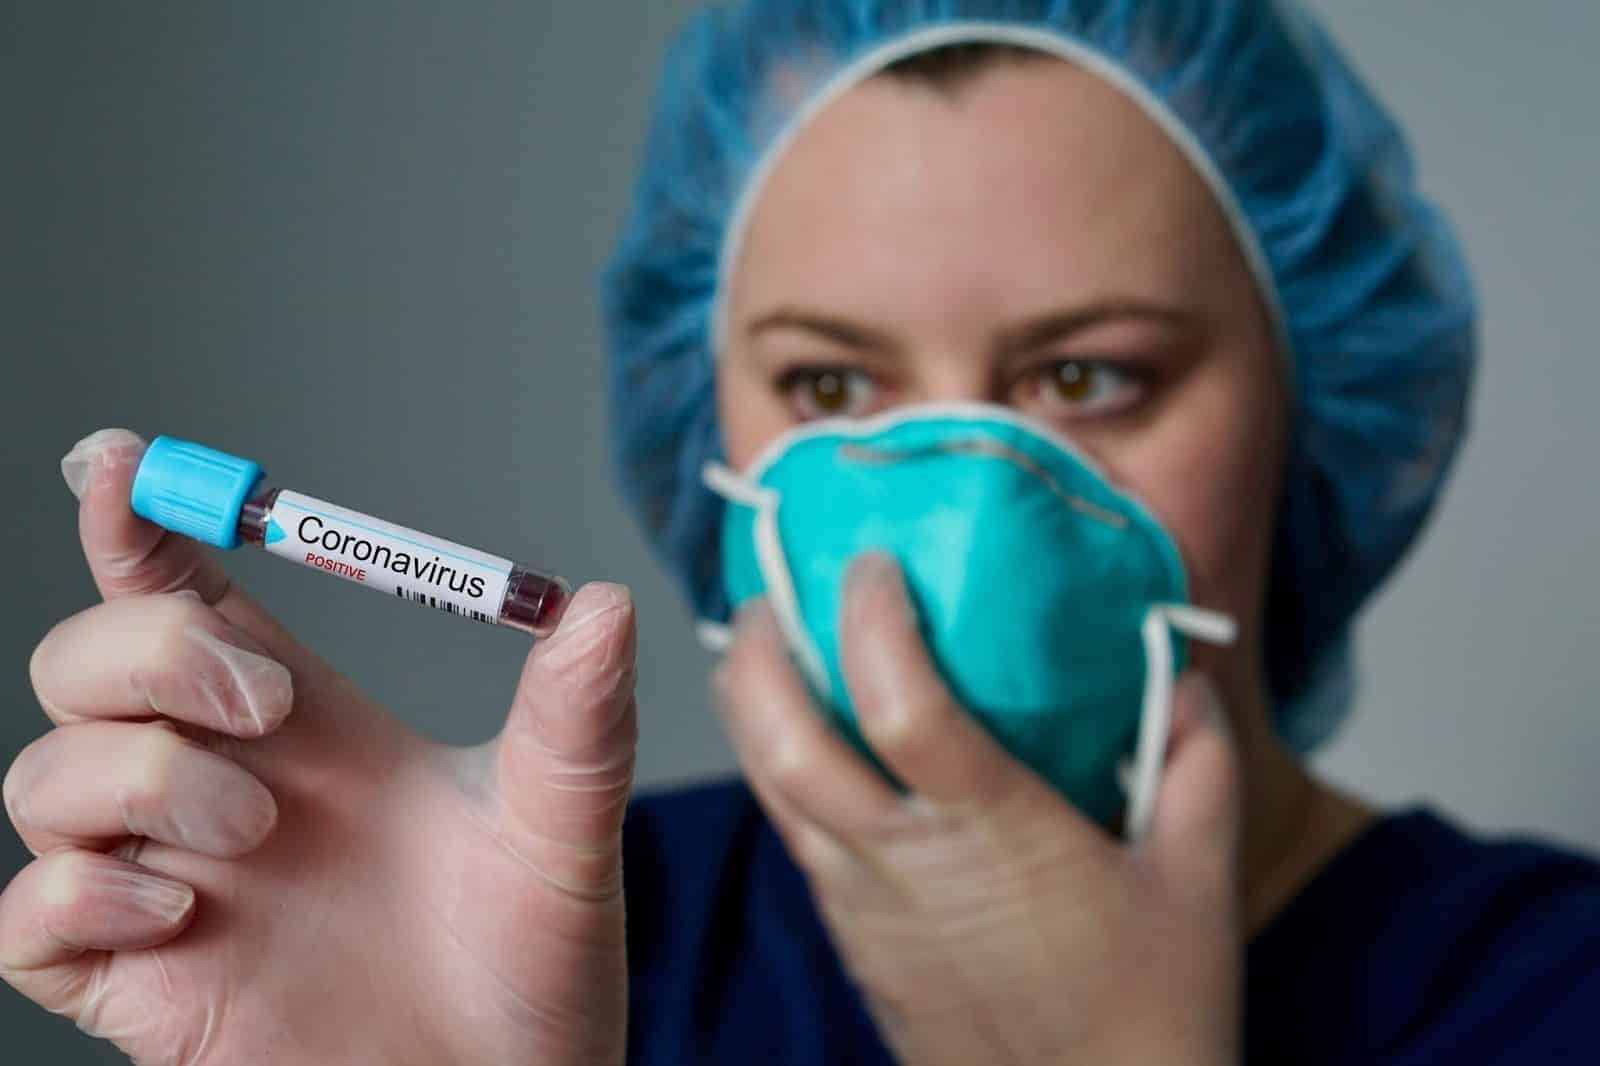 5 tips to Protect yourself from CoronaVirus (COVID-19)